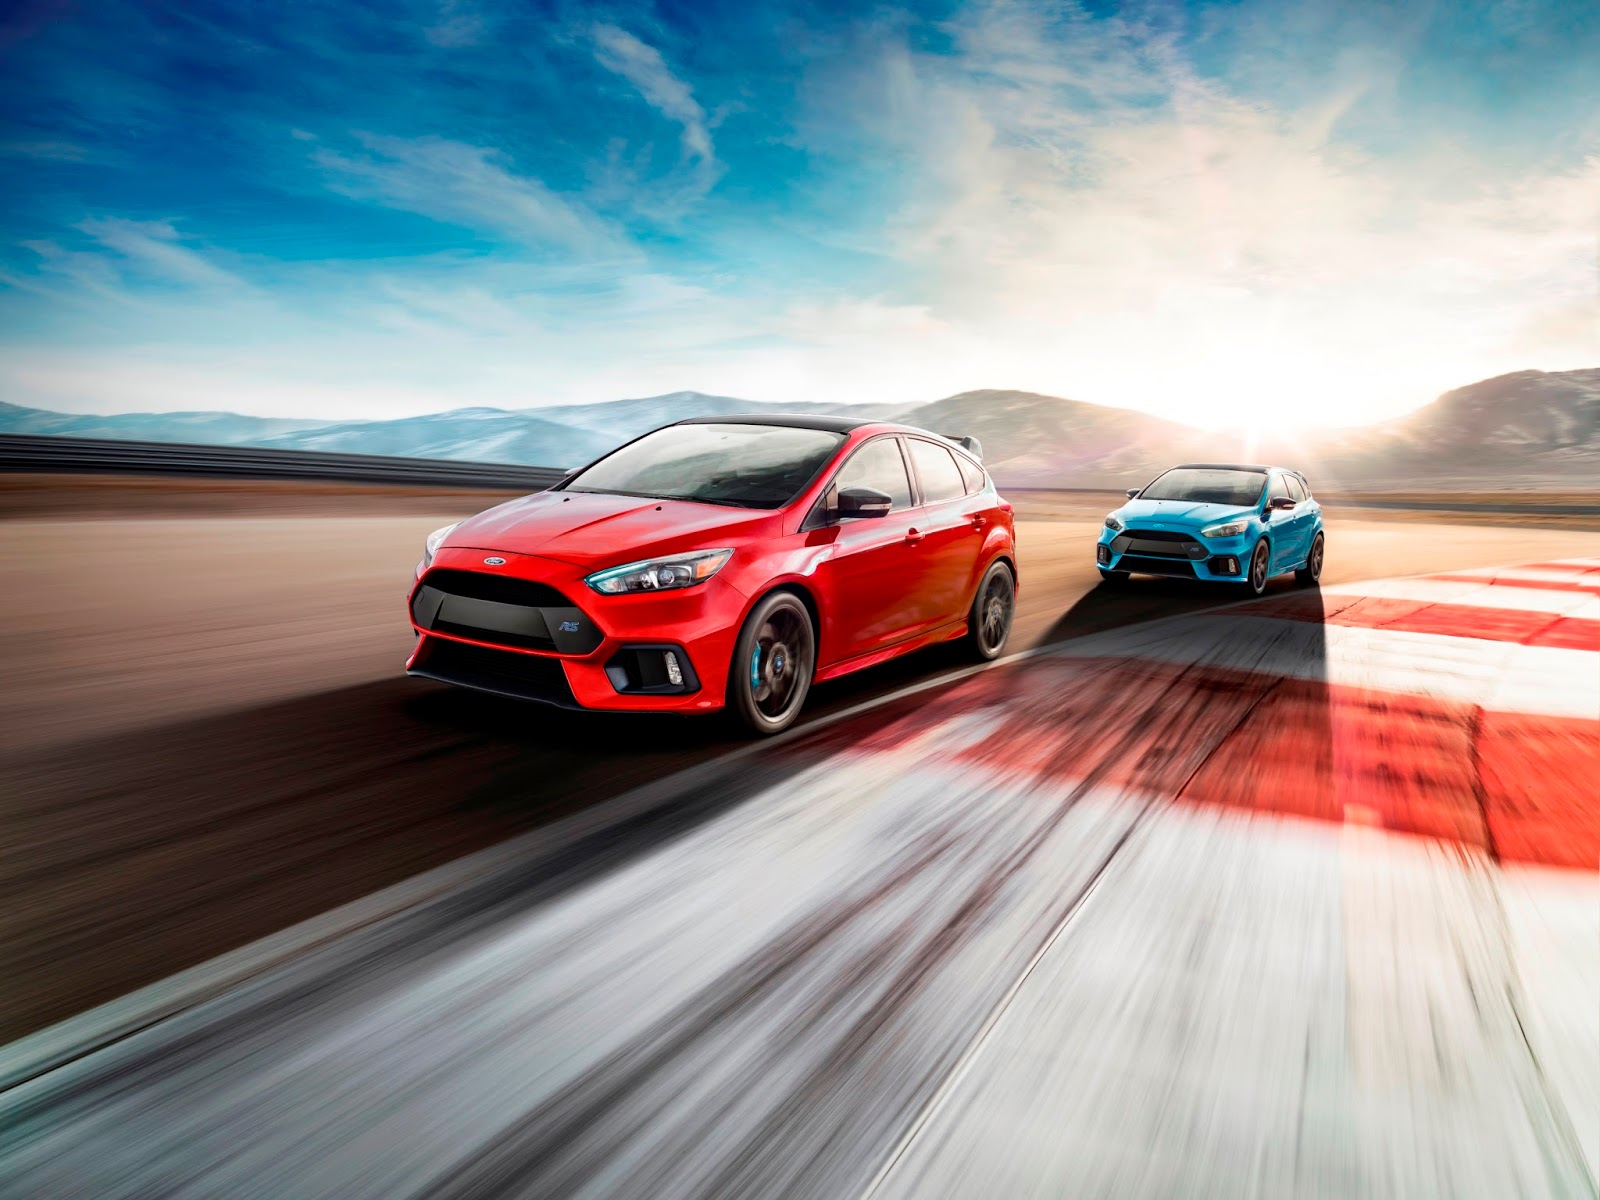 North America Image 2 Ford Focus RS Option Pack Edition : Το τέλειο βελτιώθηκε! Ford, Ford Focus, Ford Focus RS, Ford Focus RS Option Pack Edition, Ford Performance, Limited edition, videos